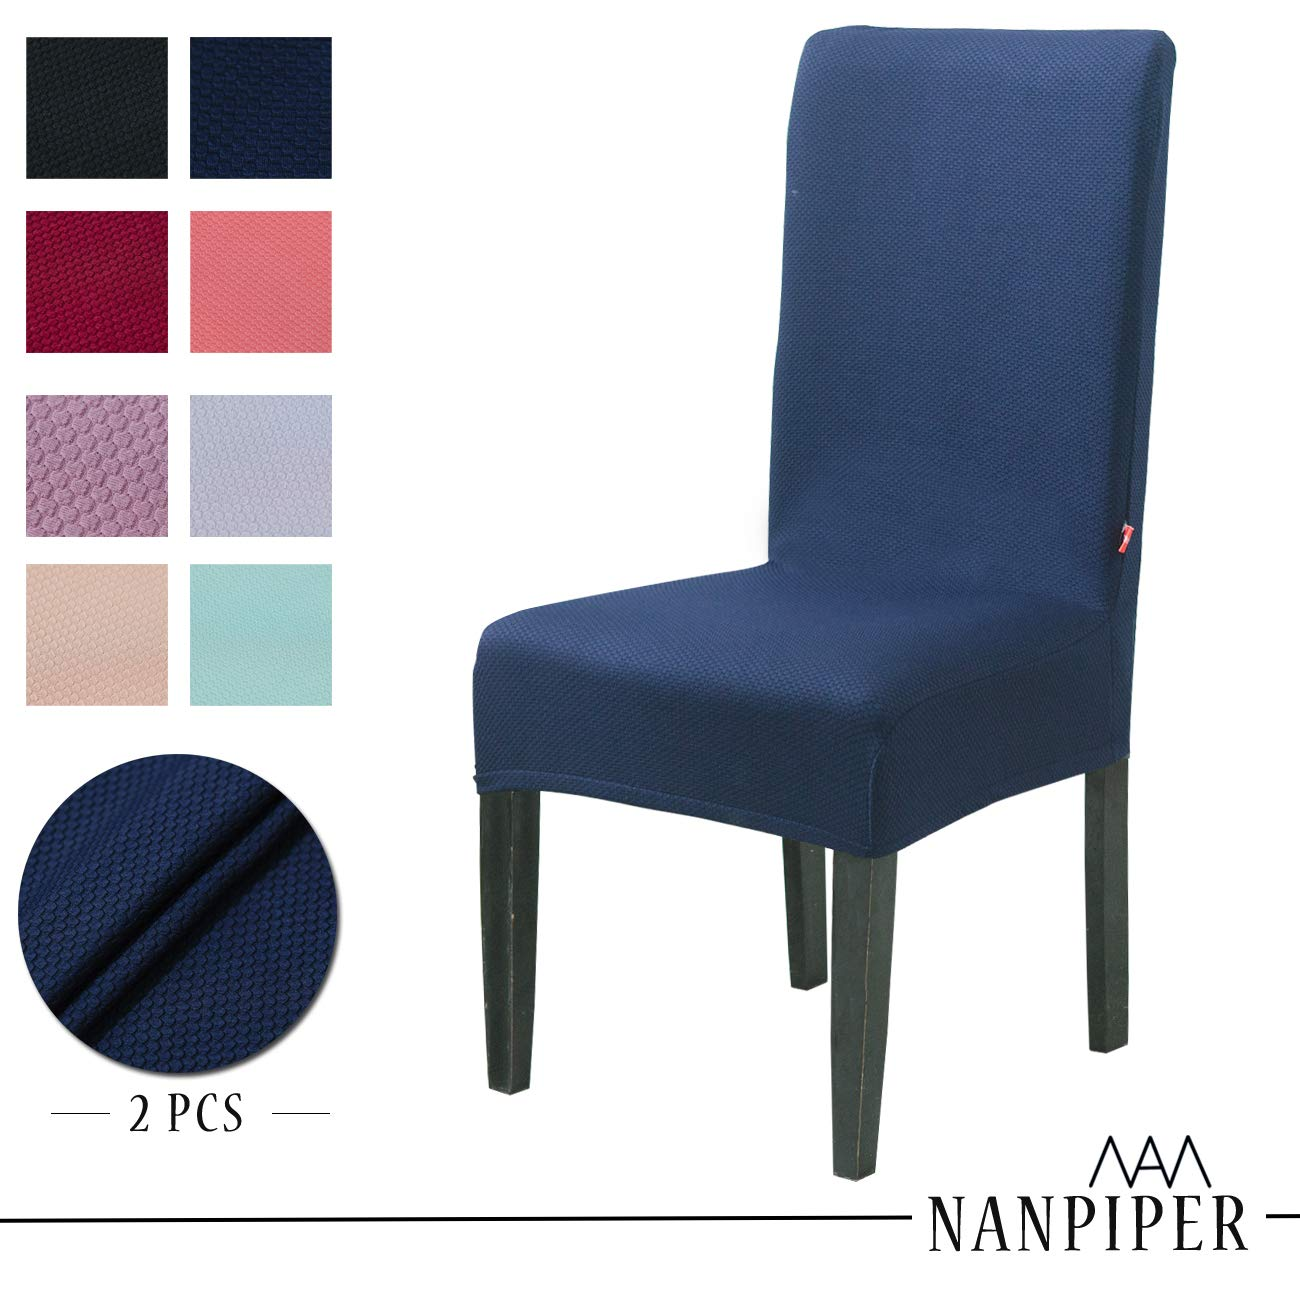 NANPIPER Dining Chair Slipcovers Washable Stretch Chair Covers for Dining Room Spandex Stretch Fabric Home Décor Set of 2 Navy Blue